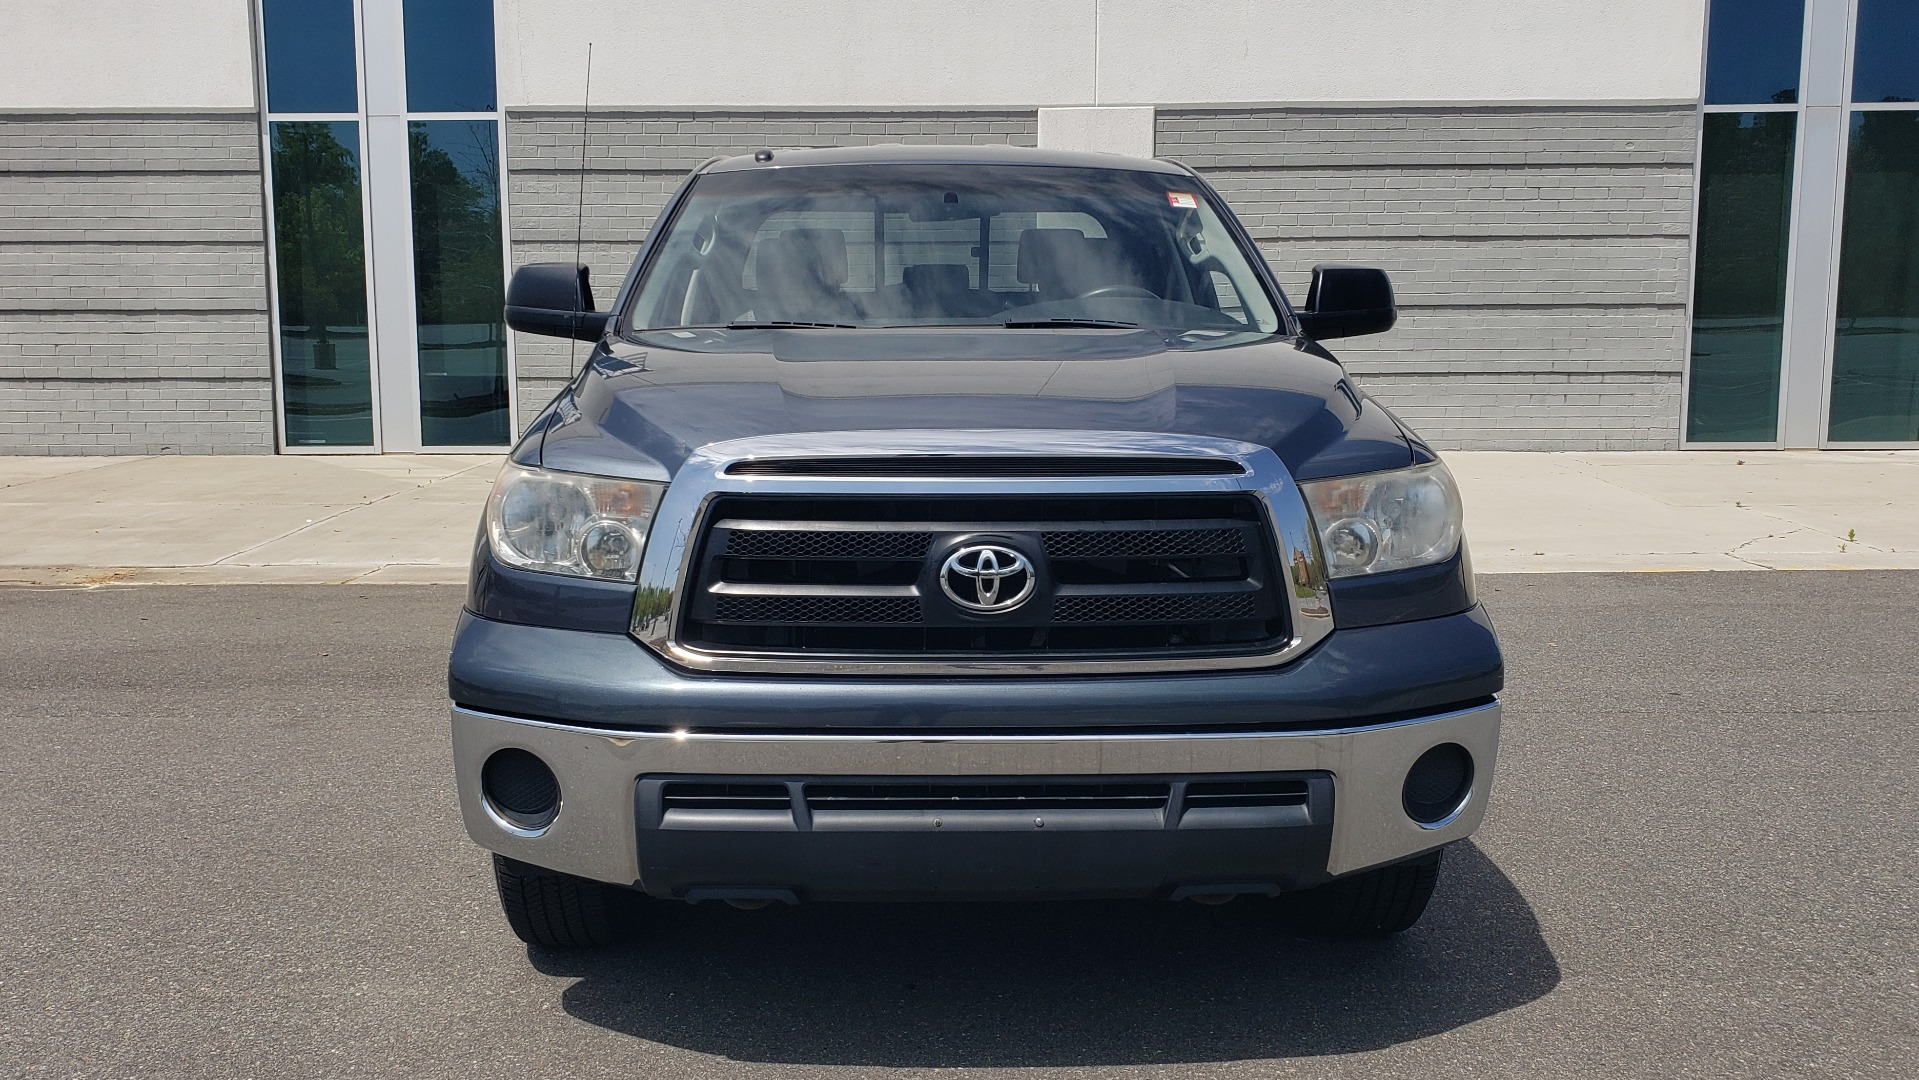 Used 2010 Toyota TUNDRA DOUBLECAB 4X4 / 4.6L V8 / 6-SPD AUTO / TOW PKG / 18IN WHEELS for sale Sold at Formula Imports in Charlotte NC 28227 21